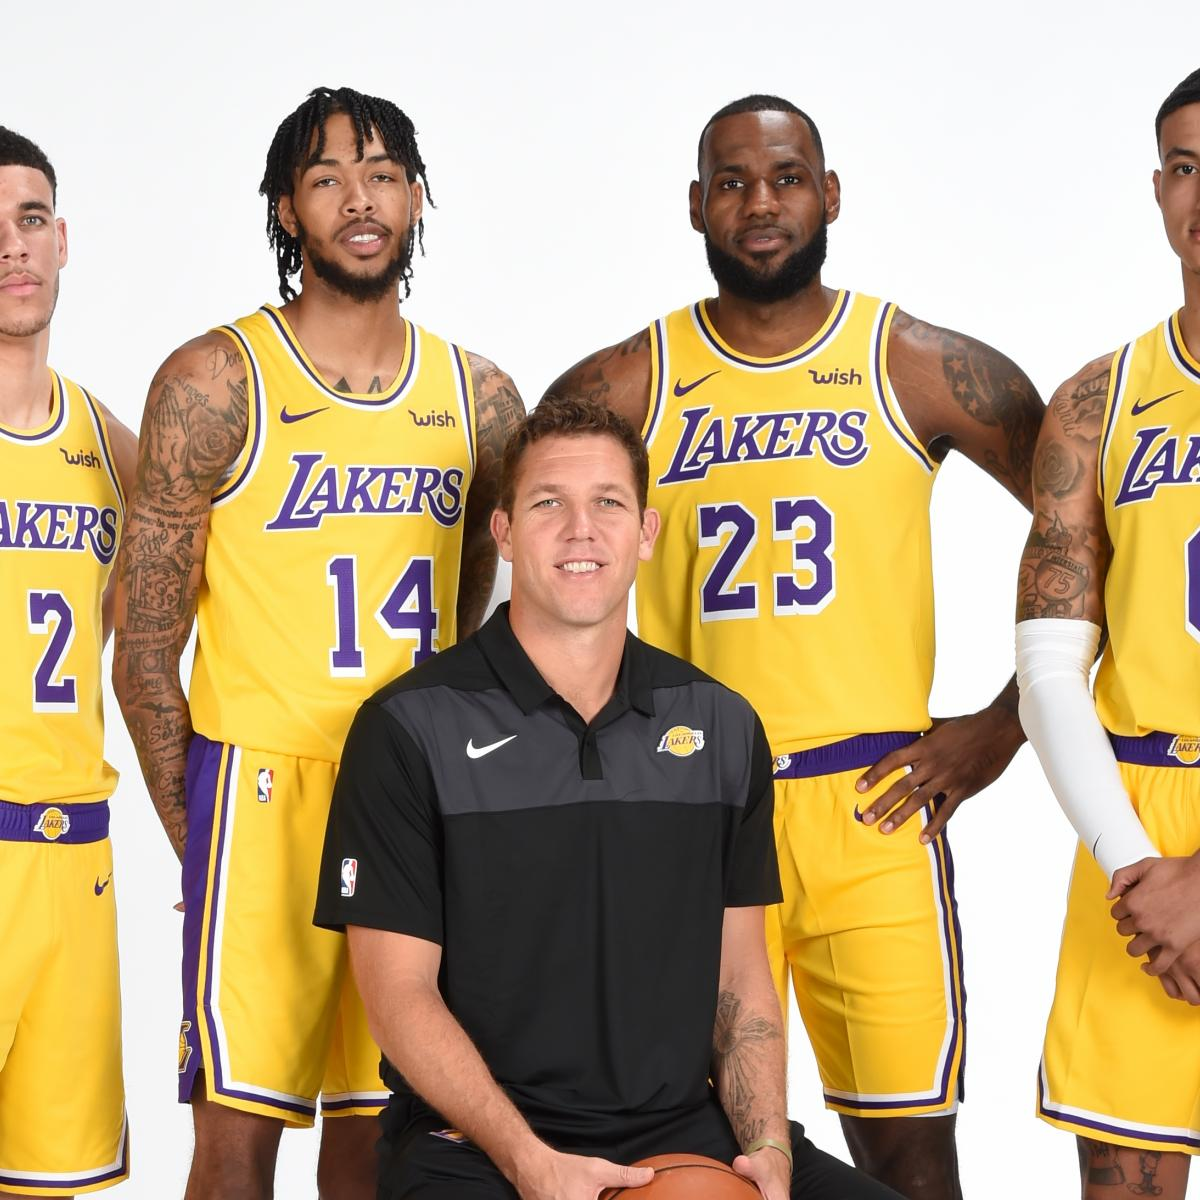 2b09bcf1dbb The 1 Player from Every NBA Team Under the Most Pressure | Bleacher Report  | Latest News, Videos and Highlights